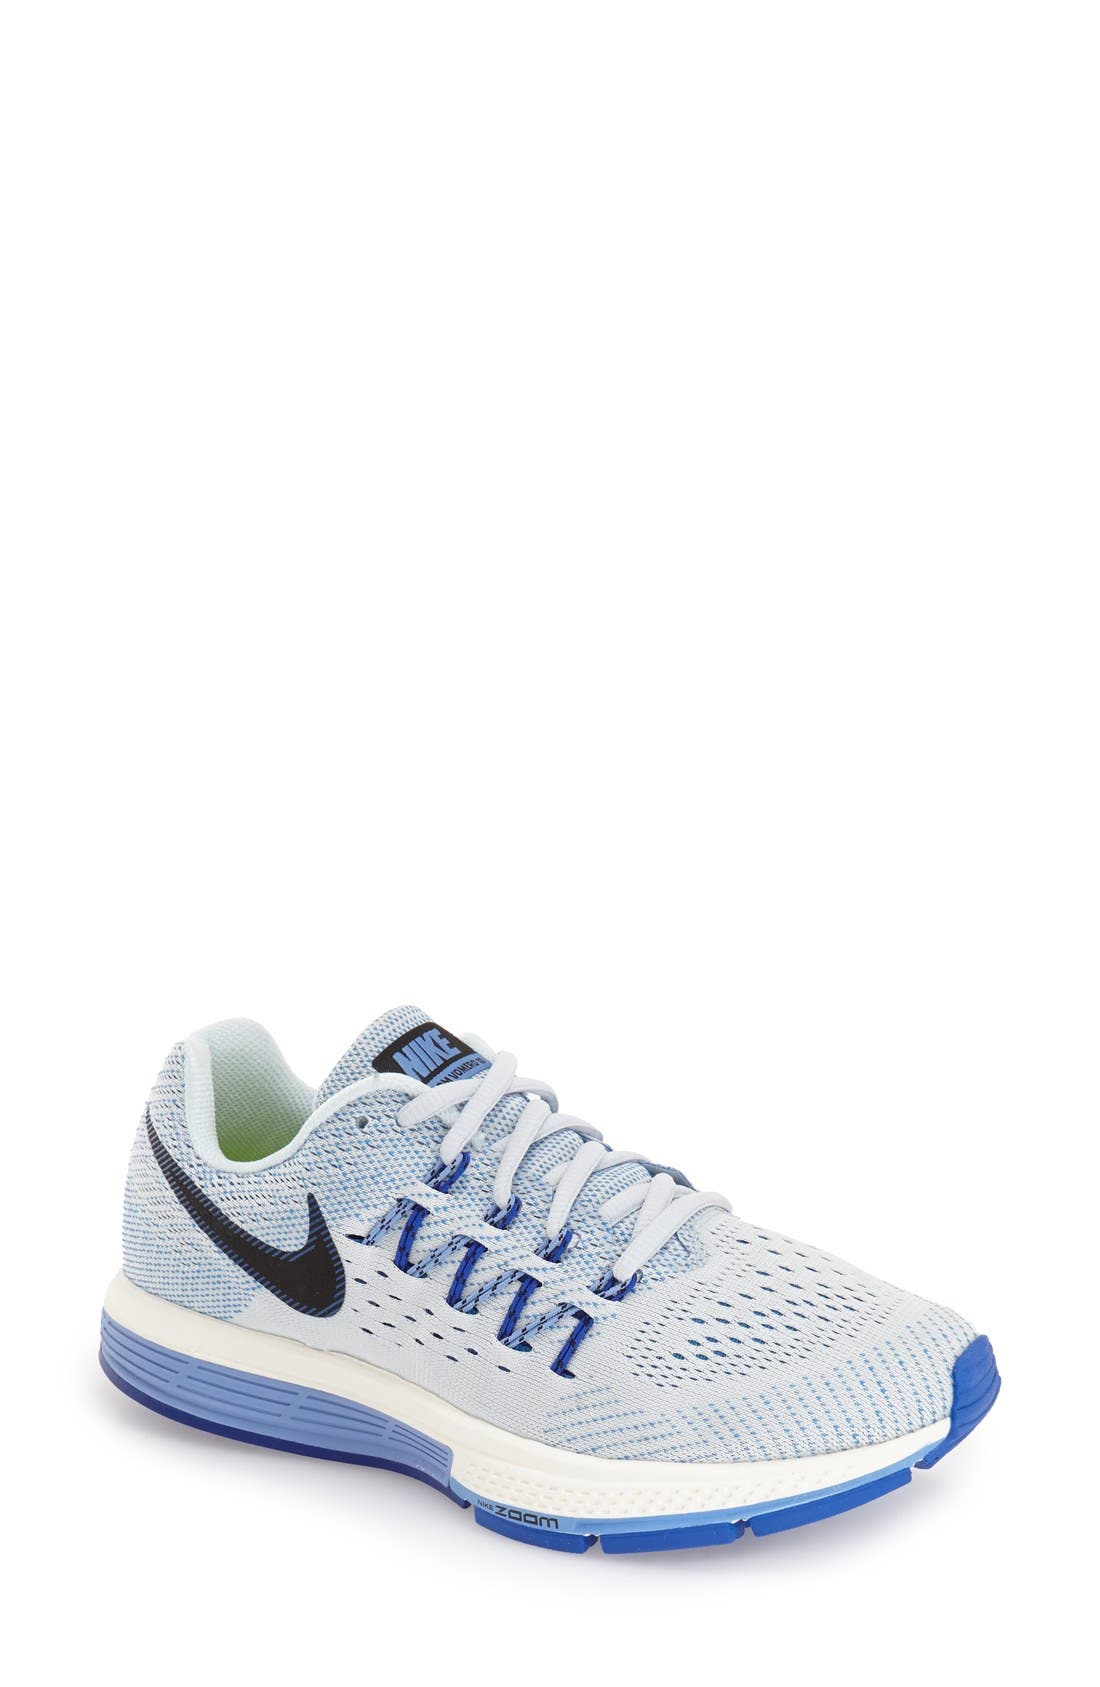 Alternate Image 1 Selected - Nike 'Air Zoom Vomero 10' Running Shoe (Women)